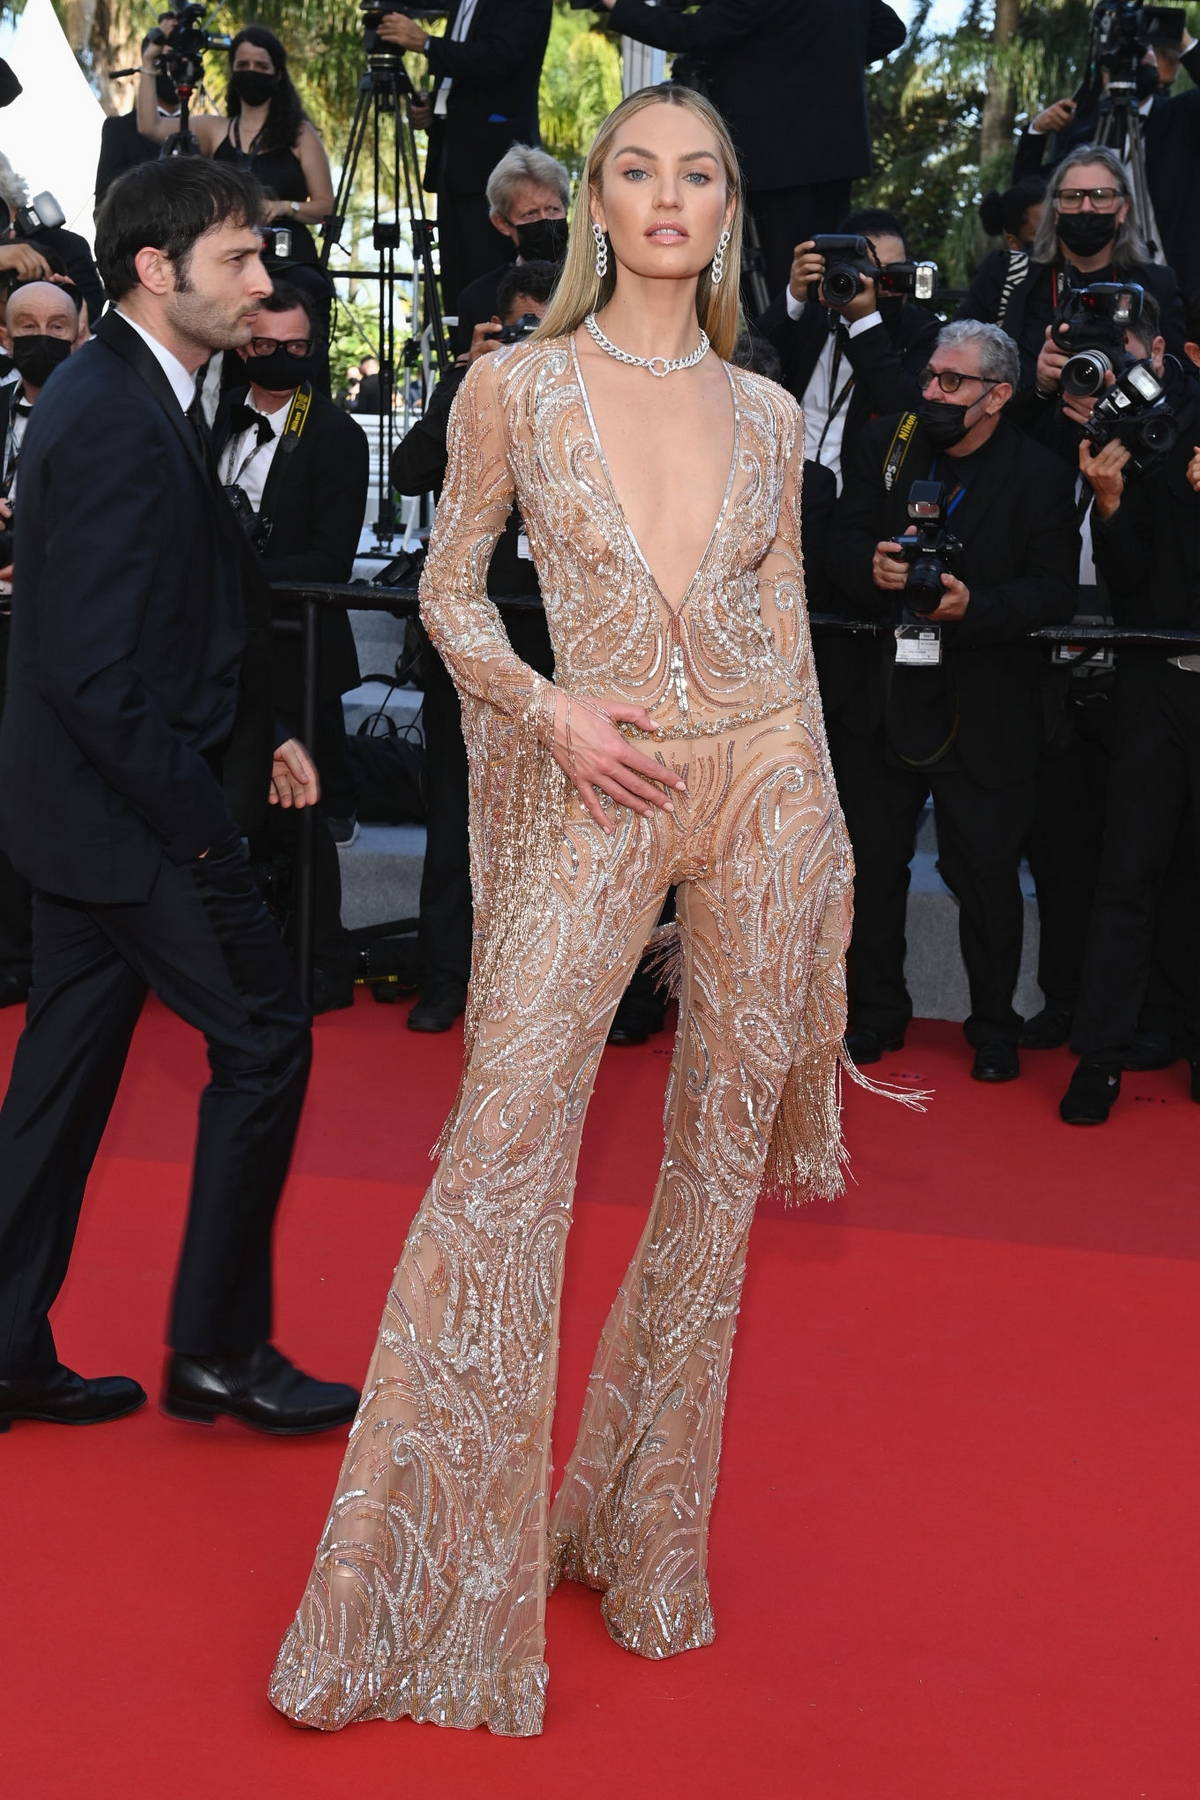 Candice Swanepoel attends the 'Annette' screening and opening ceremony during the 74th annual Cannes Film Festival in Cannes, France